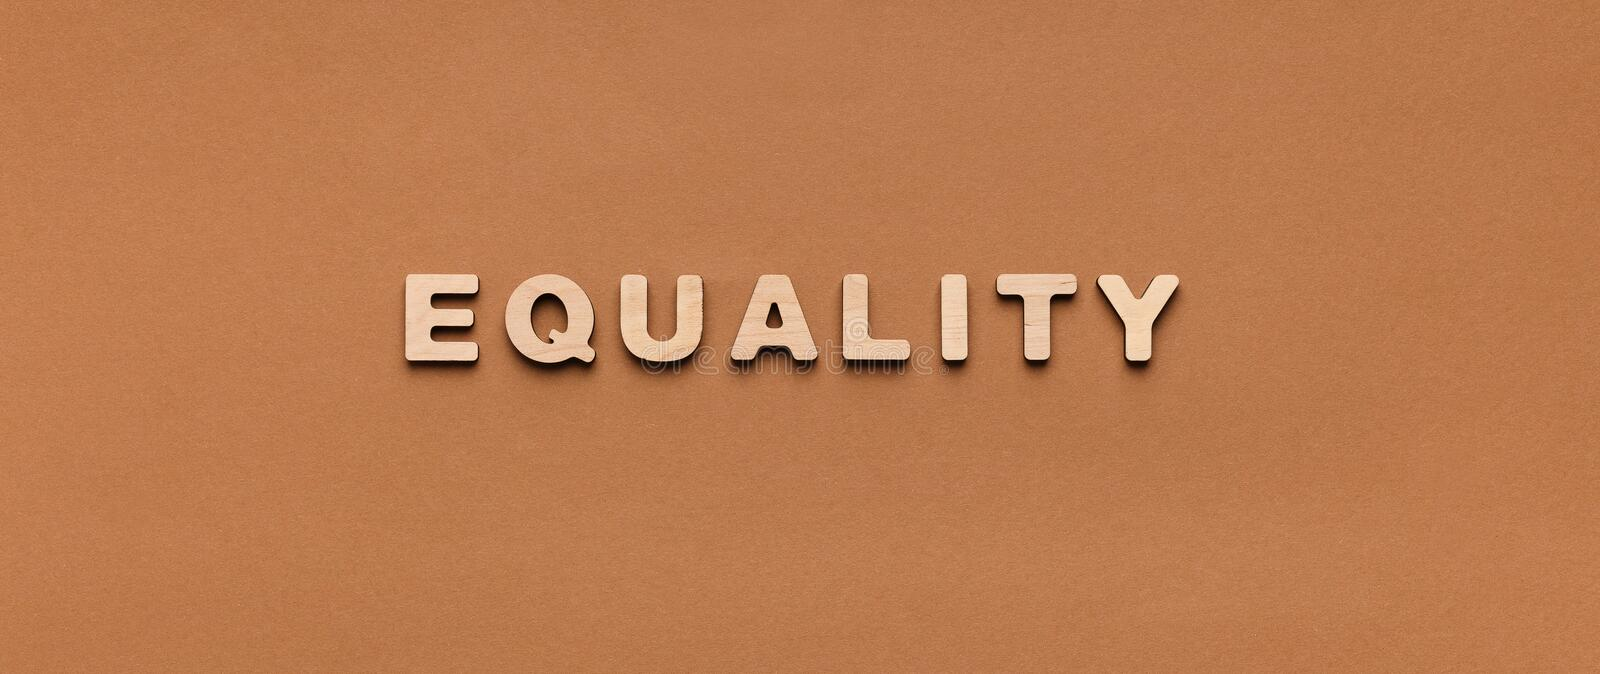 Wooden alphabet letters spelling out word Equality stock image